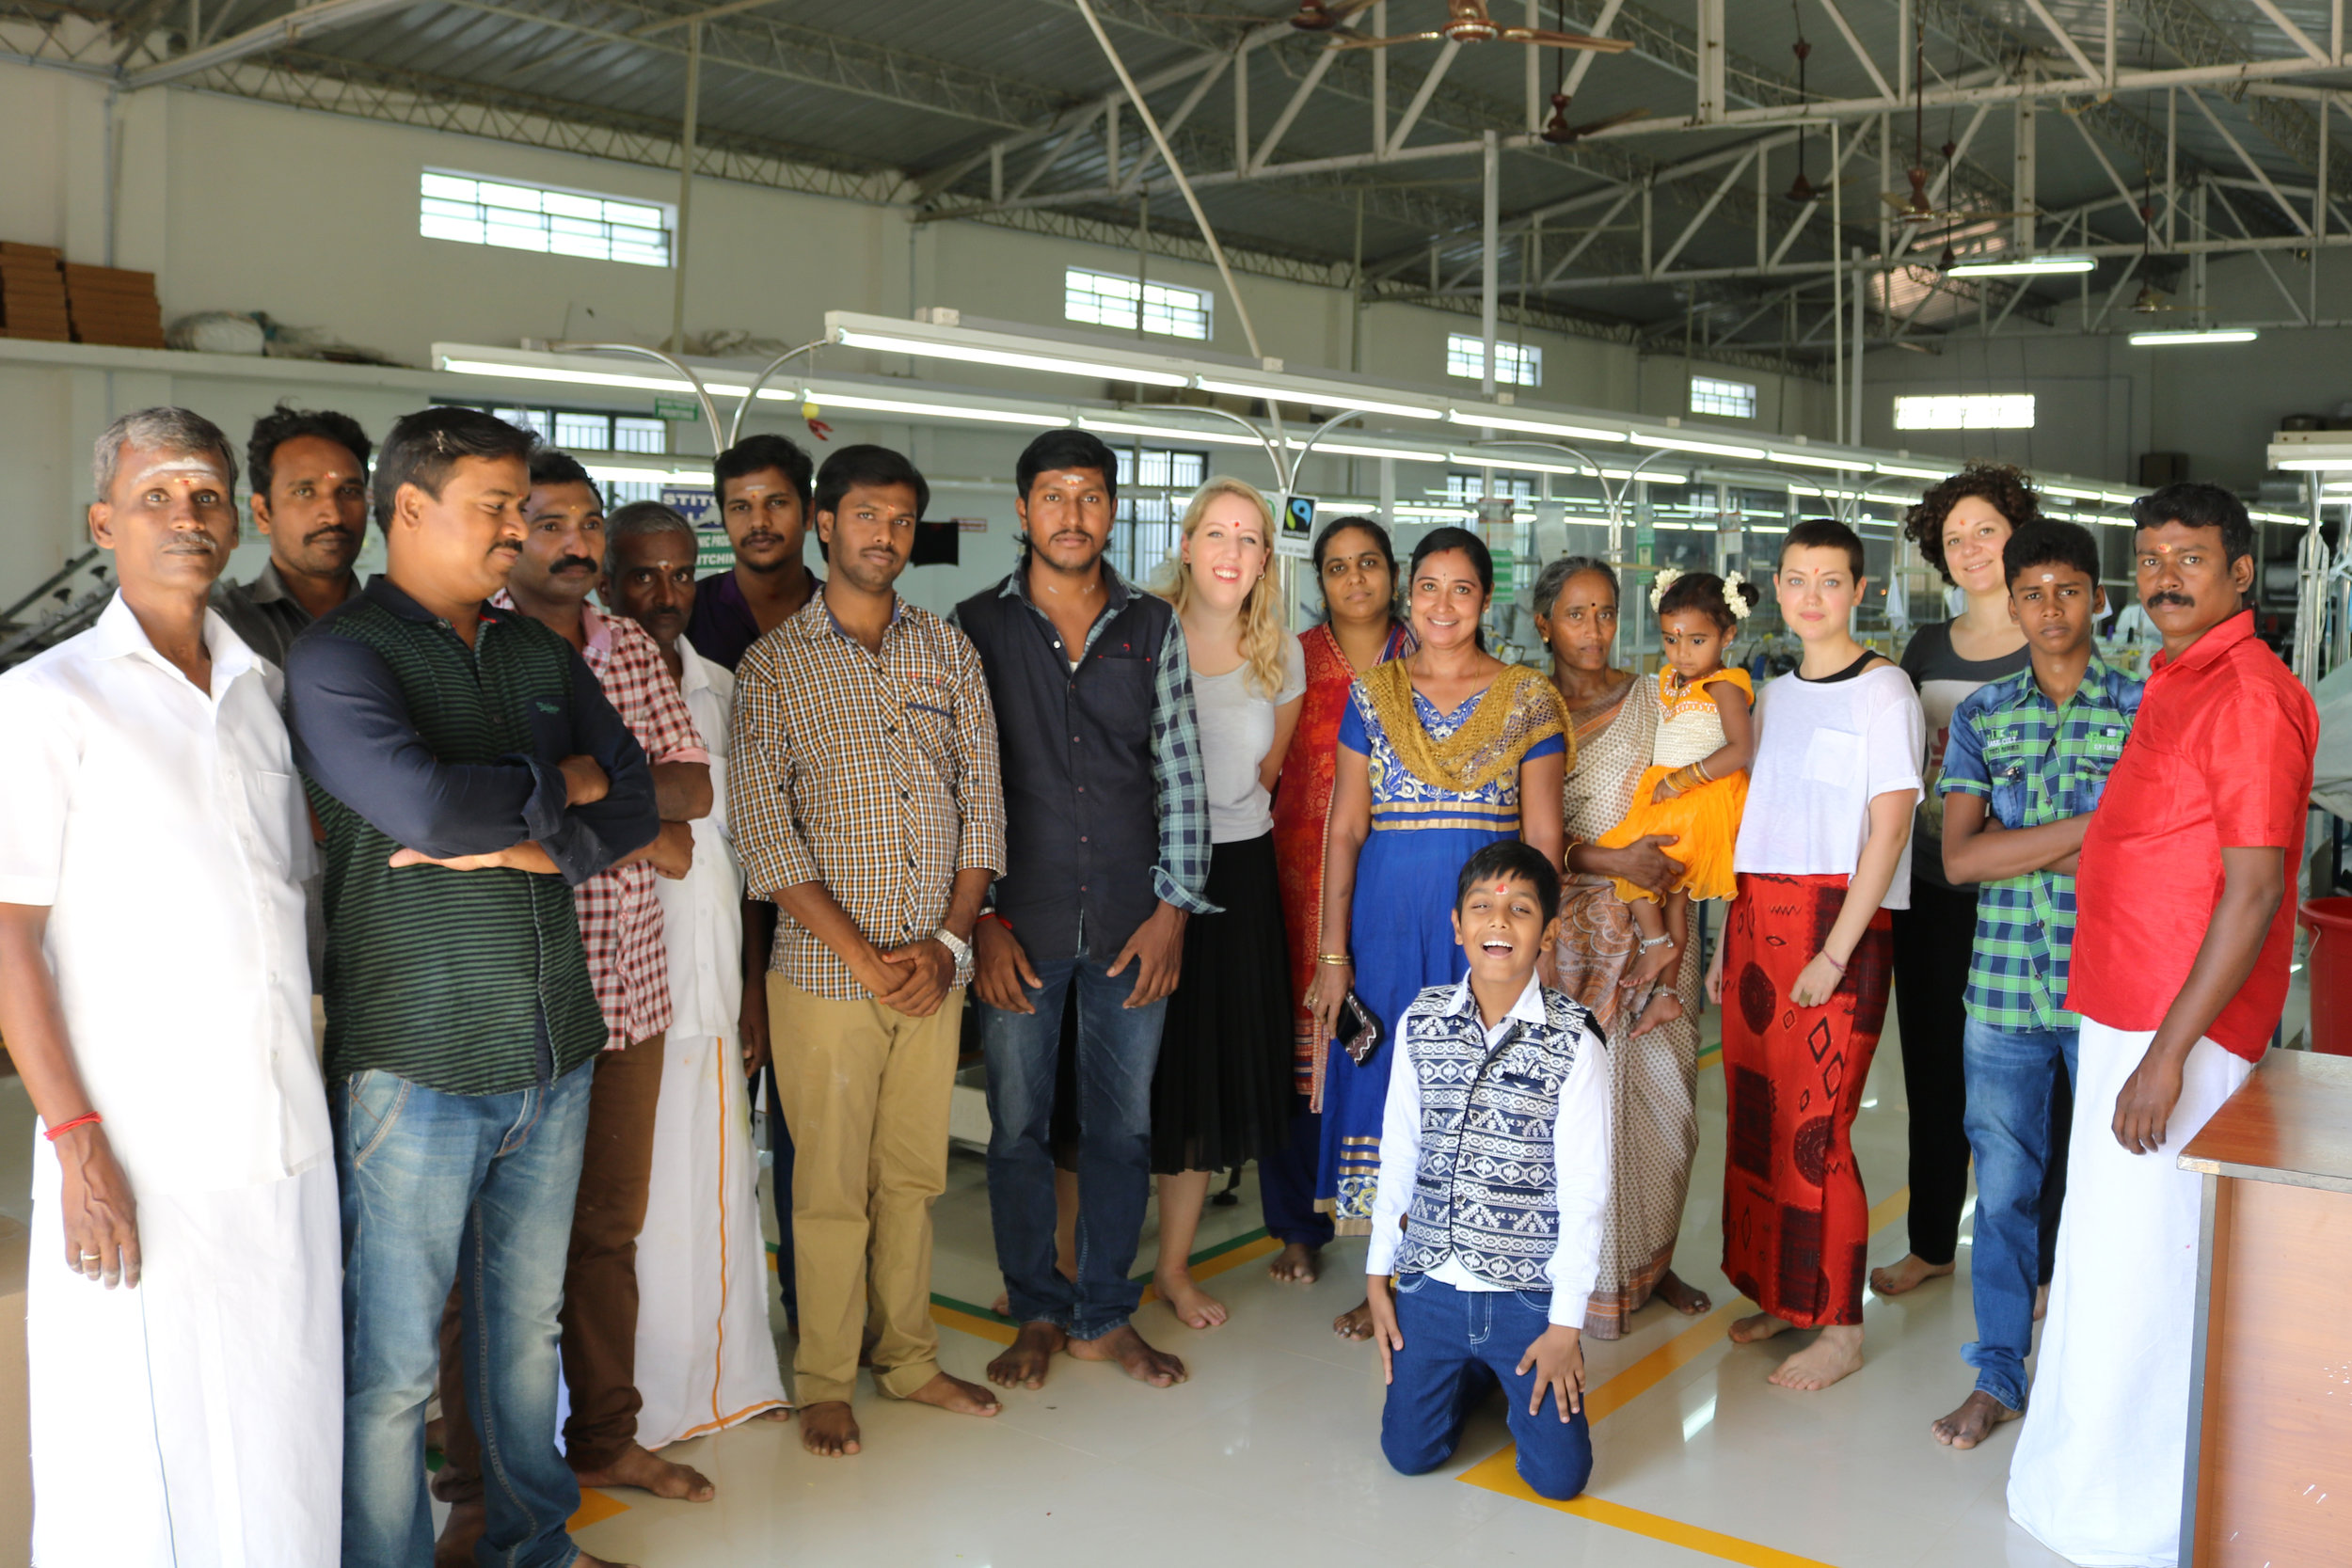 The dedicated and hardworking men and women behind KTO clothing pose with founder Charlotte Instone in their factory in South India.